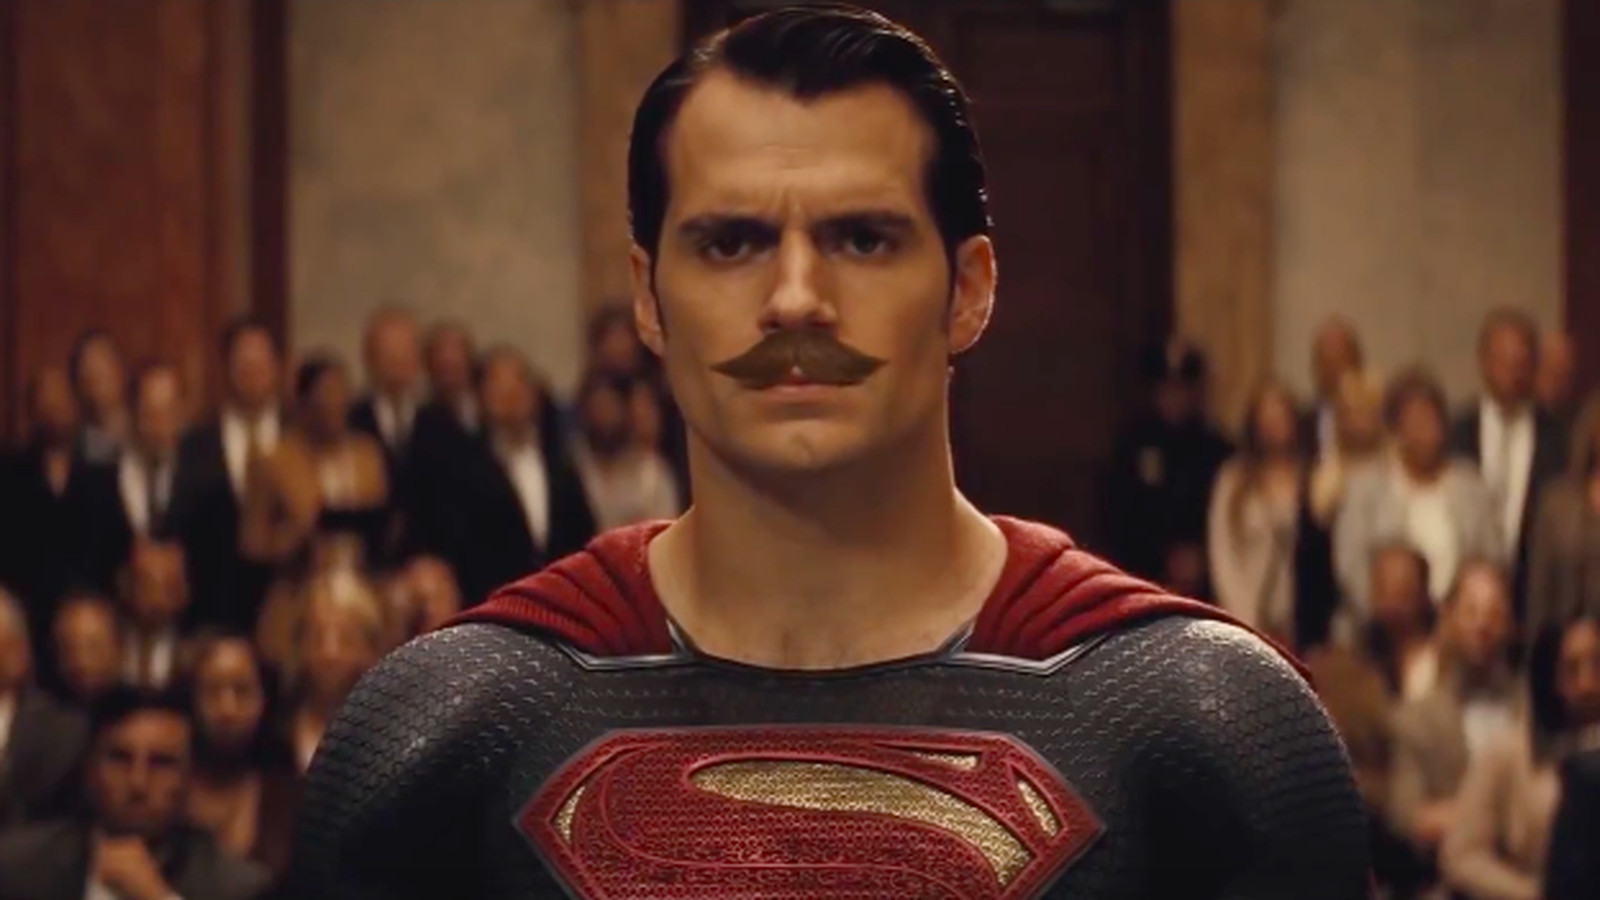 Superman gets a mustache in Batman v Superman edit and all is right in the world